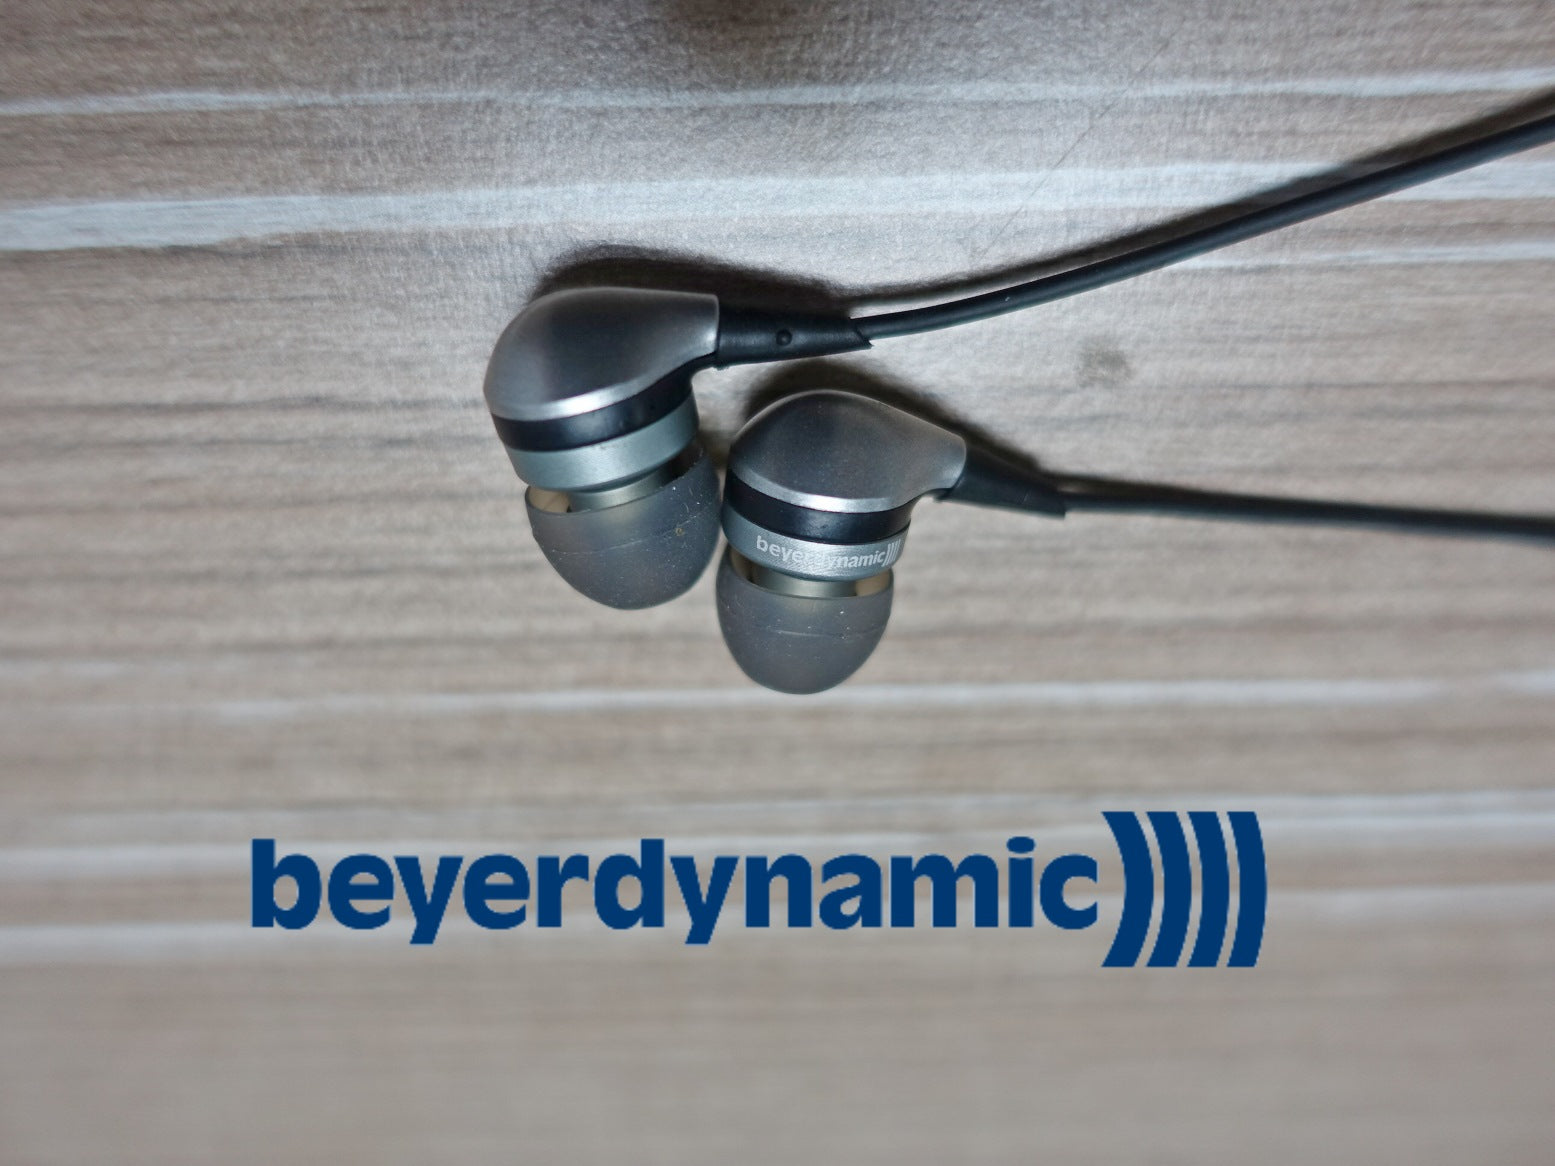 beyerdynamic MXP 50 iE Demo (SS15) - Jaben - The Little Headphone Store